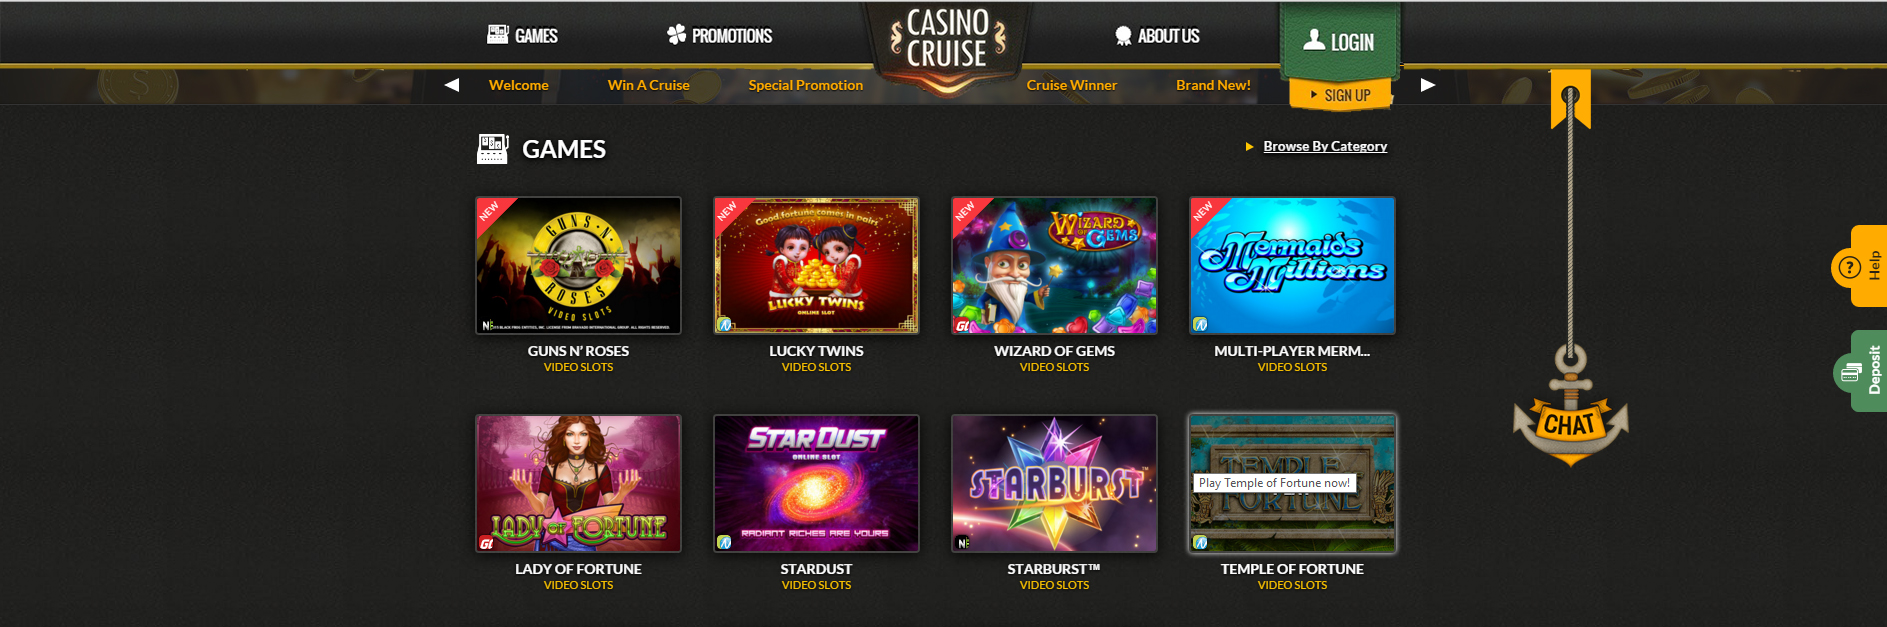 sign up free spins offer